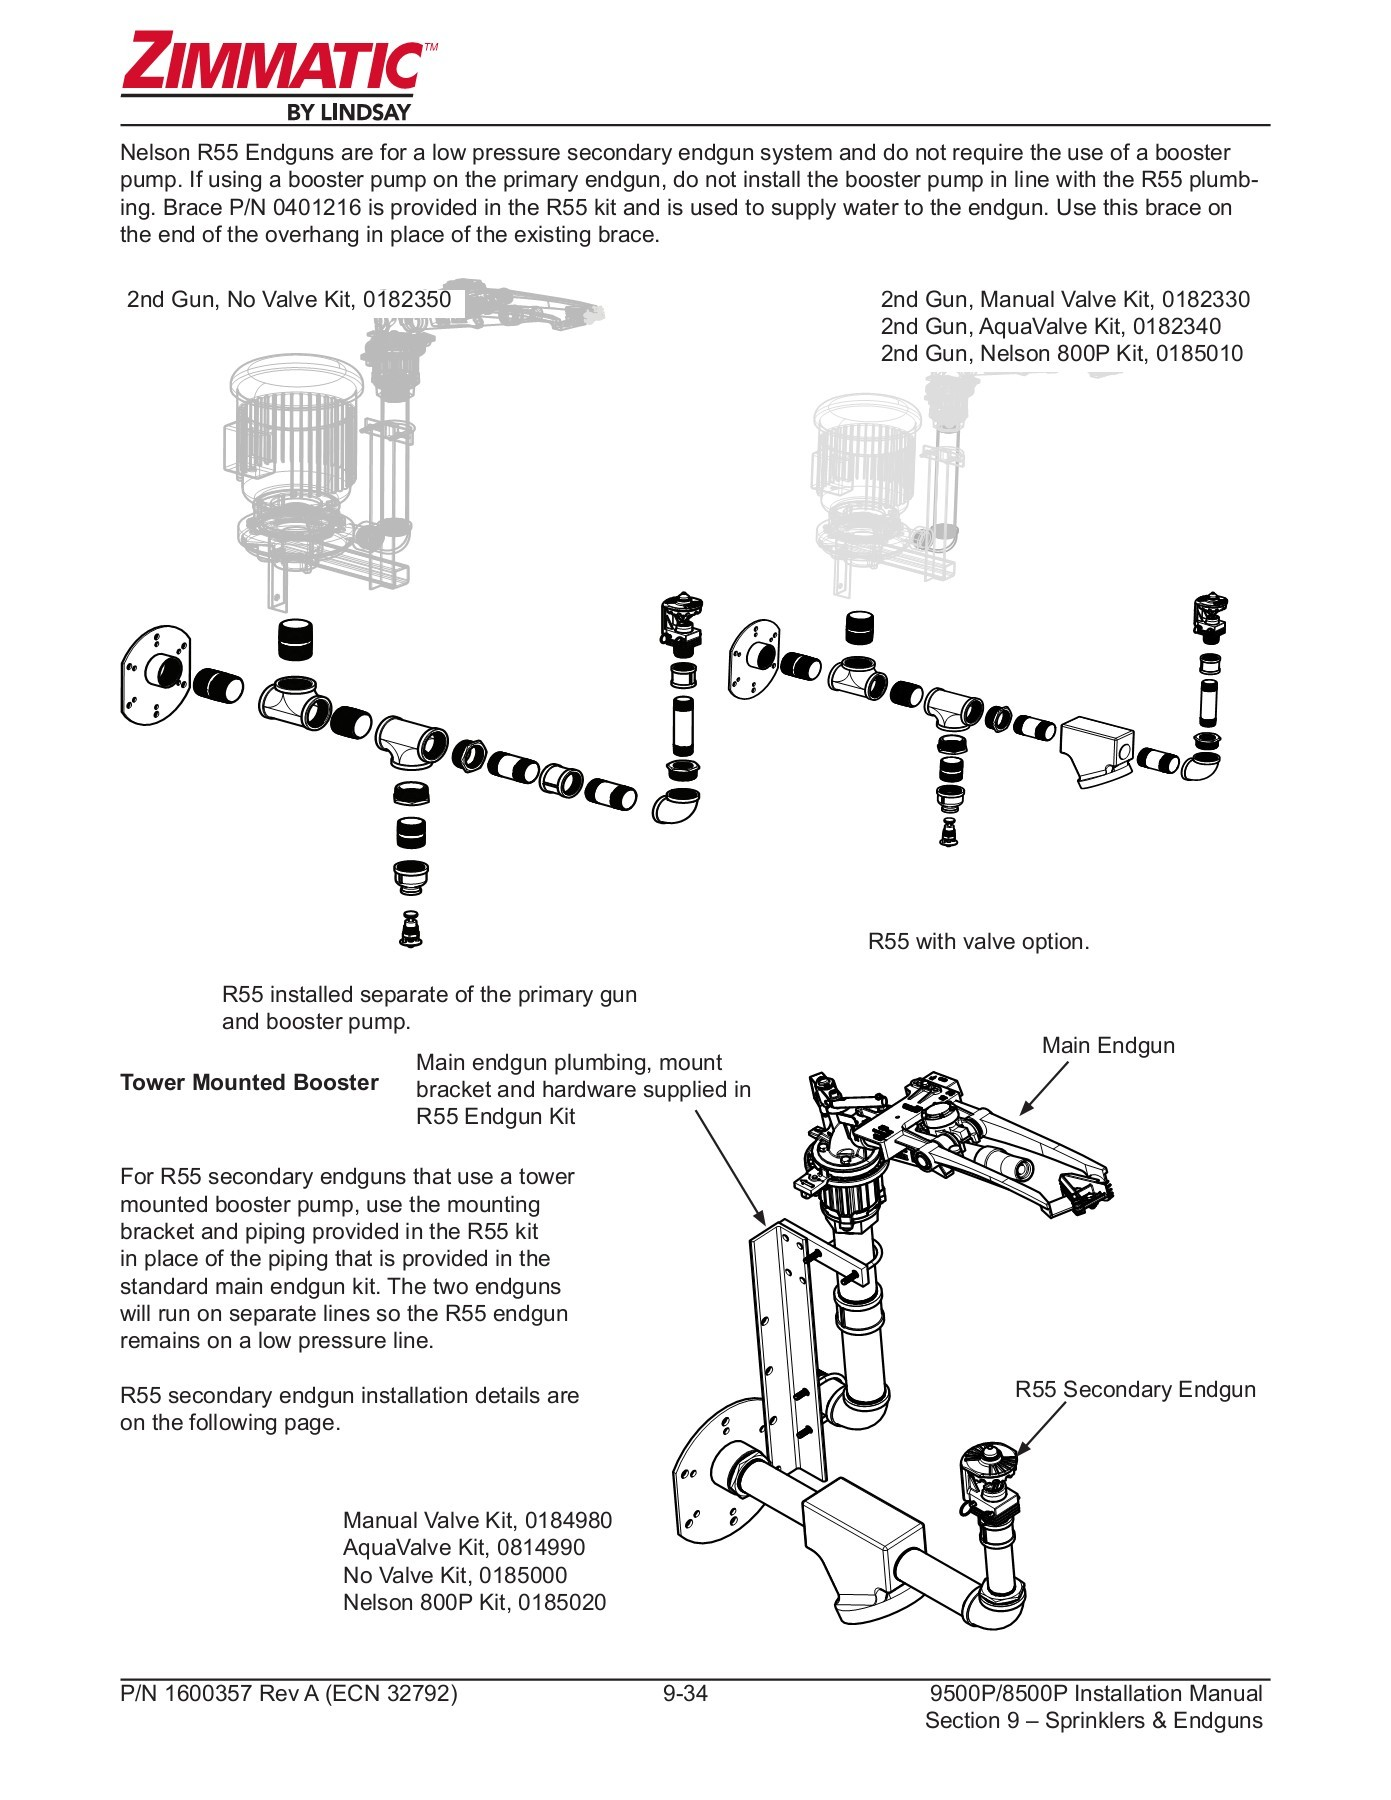 hight resolution of 1600357 9500p 8500p installation manual ecn 32792 rev a pages 301 thumbnails zimmatic wiring diagram